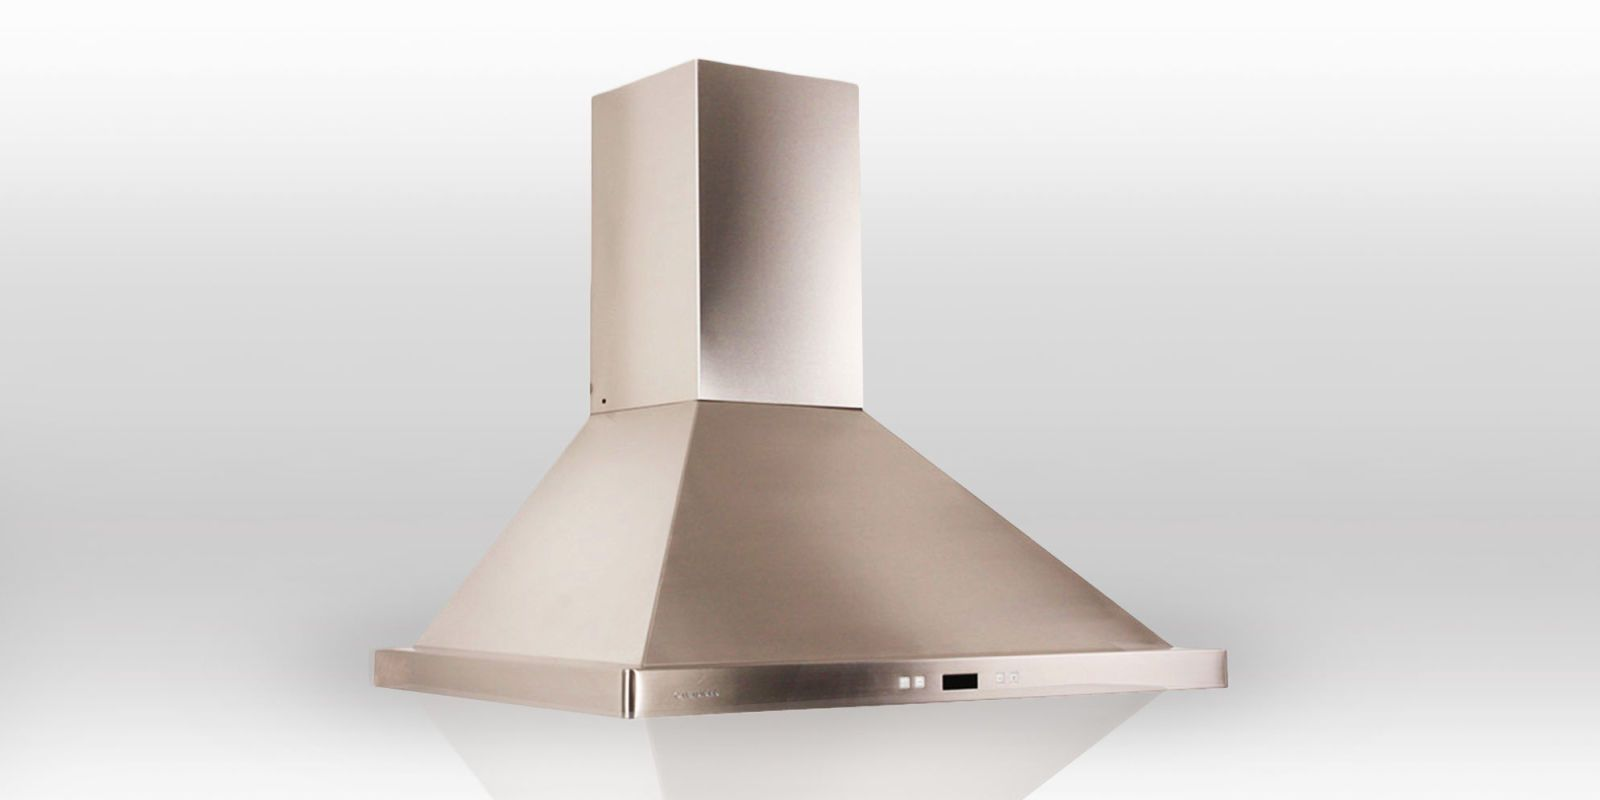 Cavaliere Wall Mount Range Hood & 10 Top Range Hoods in 2018 - Best Sleek Kitchen Range Hoods u0026 Reviews